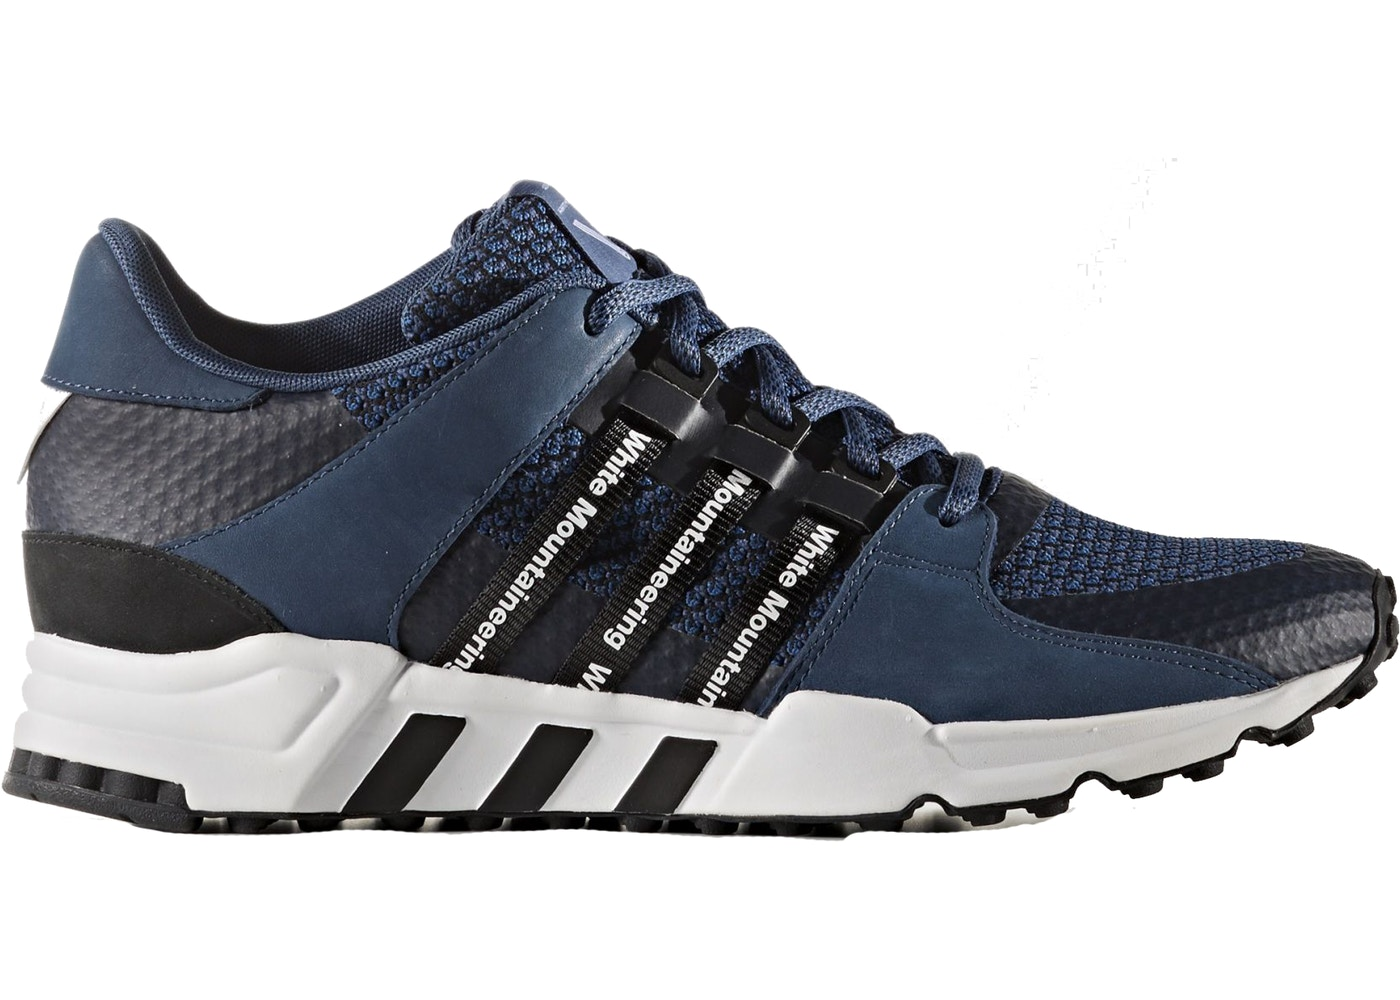 premium selection 66d4c 53ffe adidas EQT Running White Mountaineering